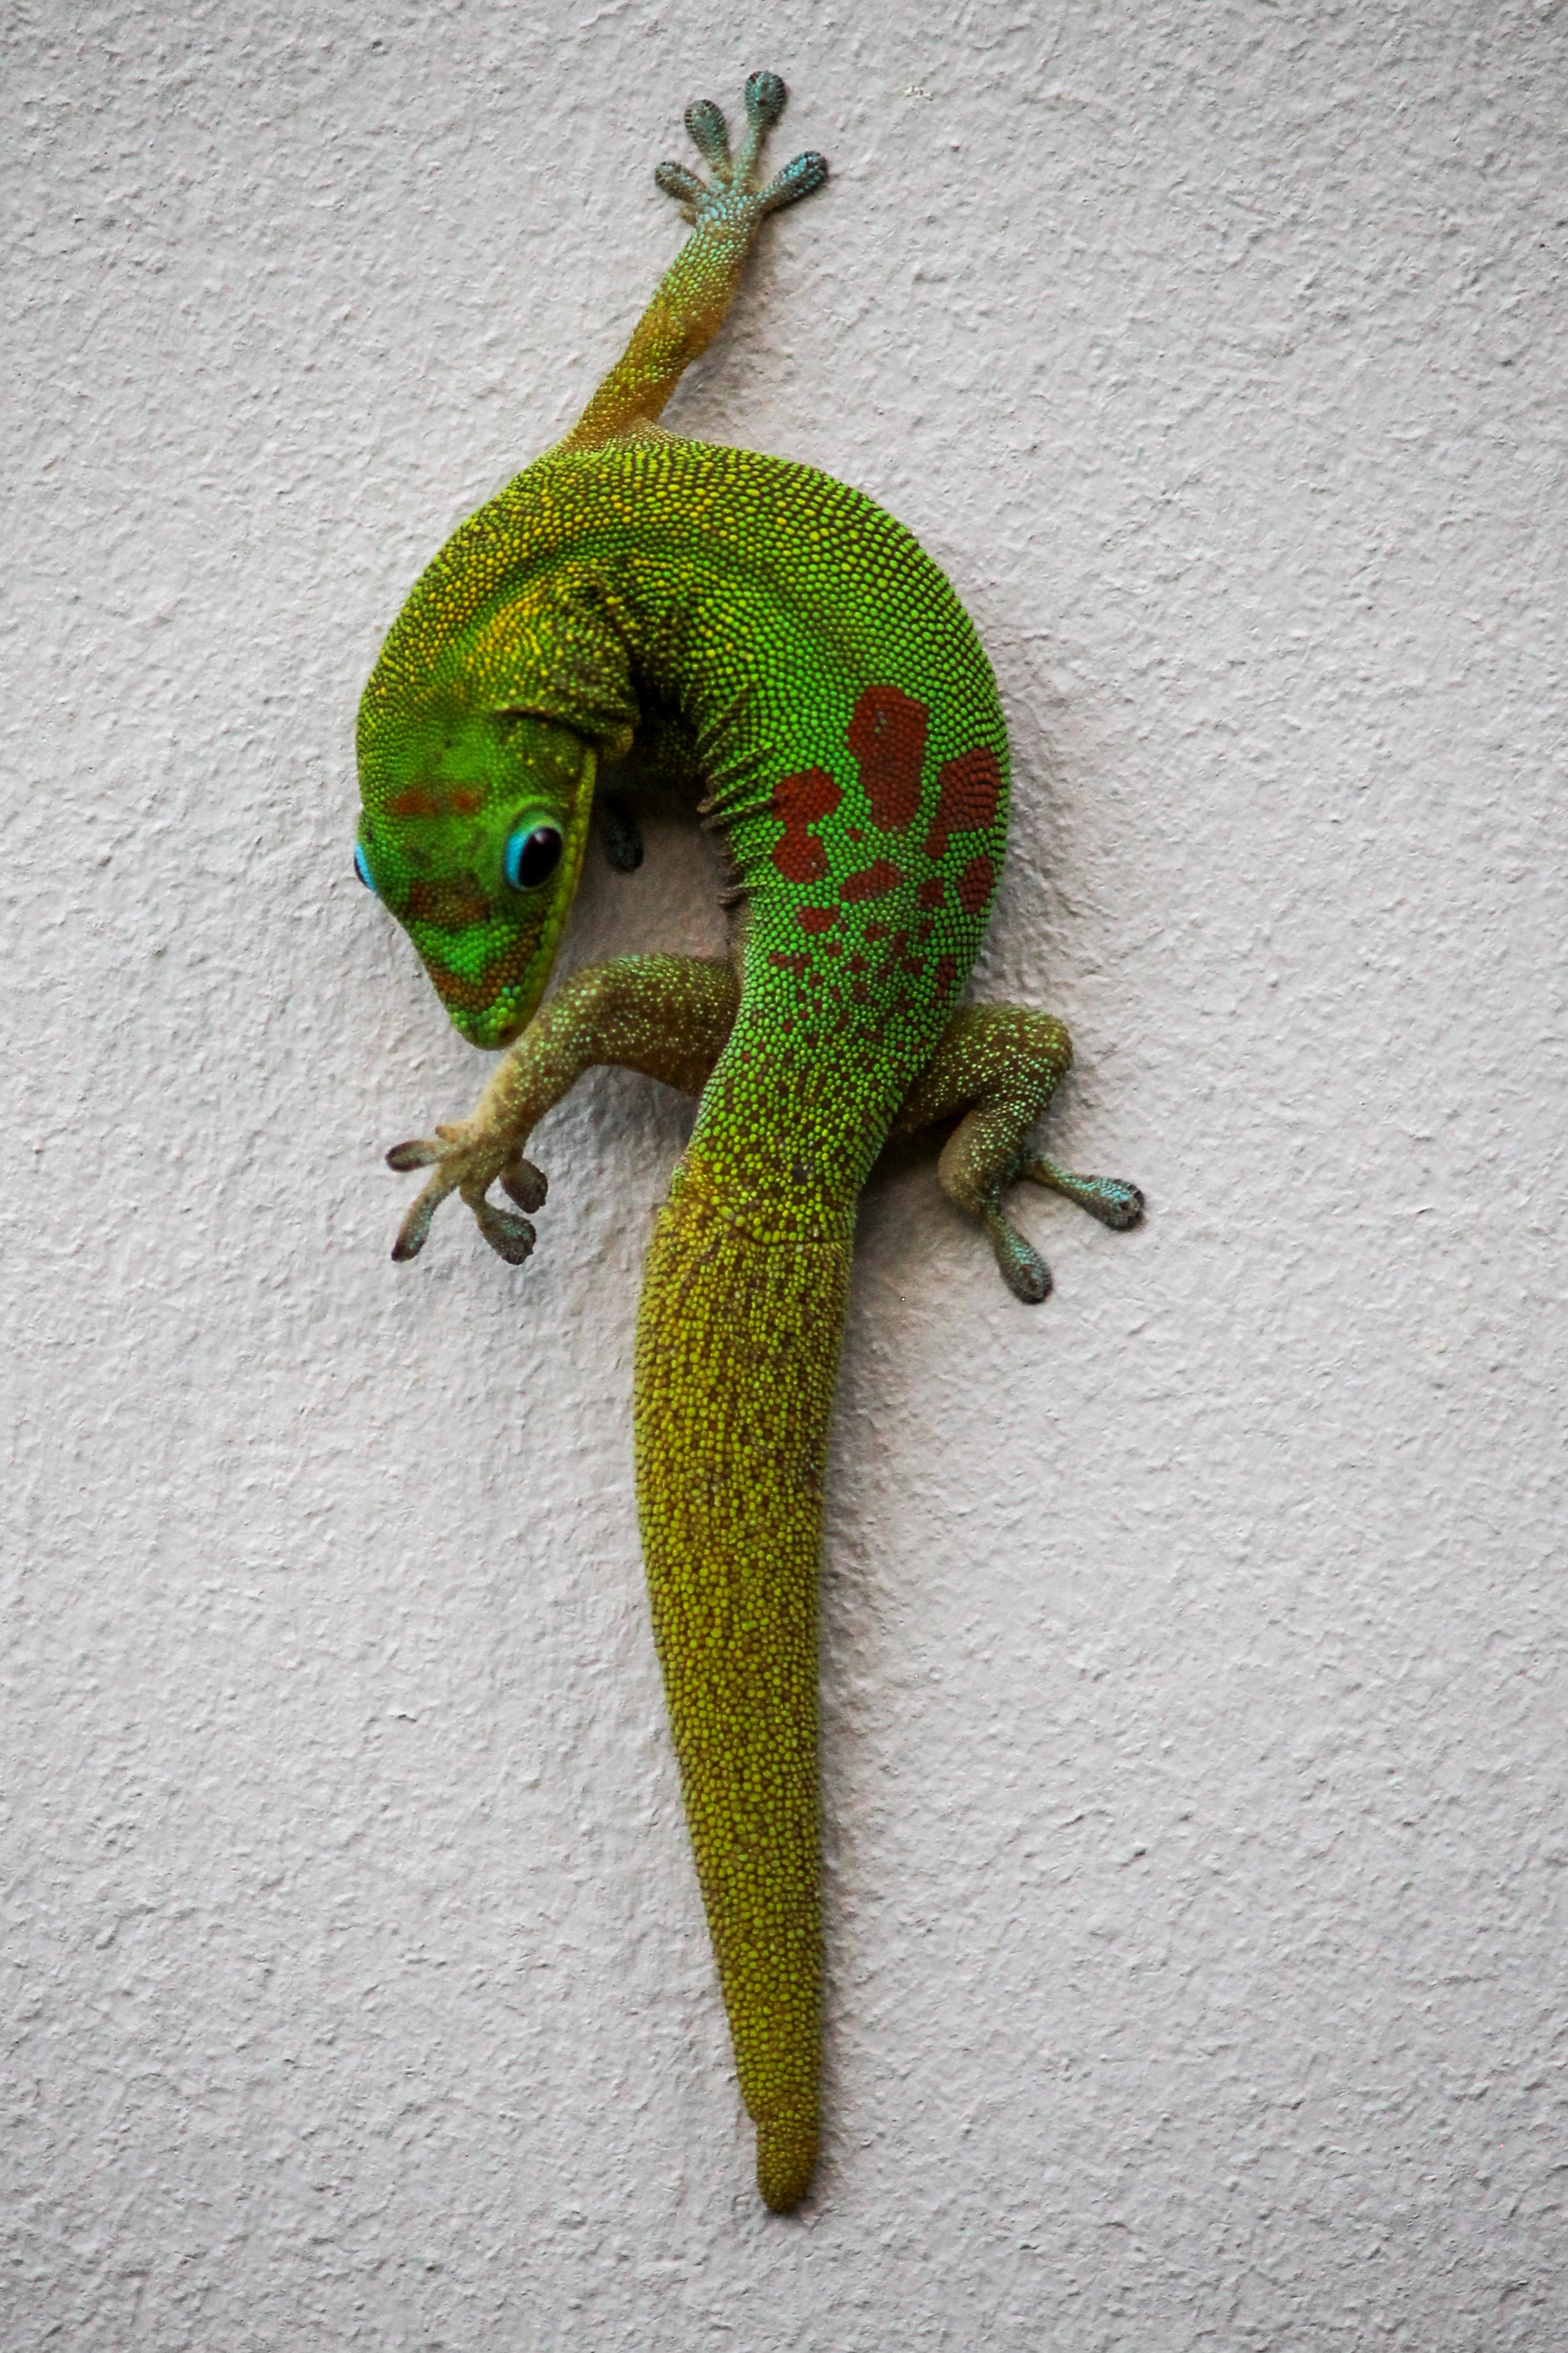 A  Gold Dust Day gecko on the island of Hawaii.